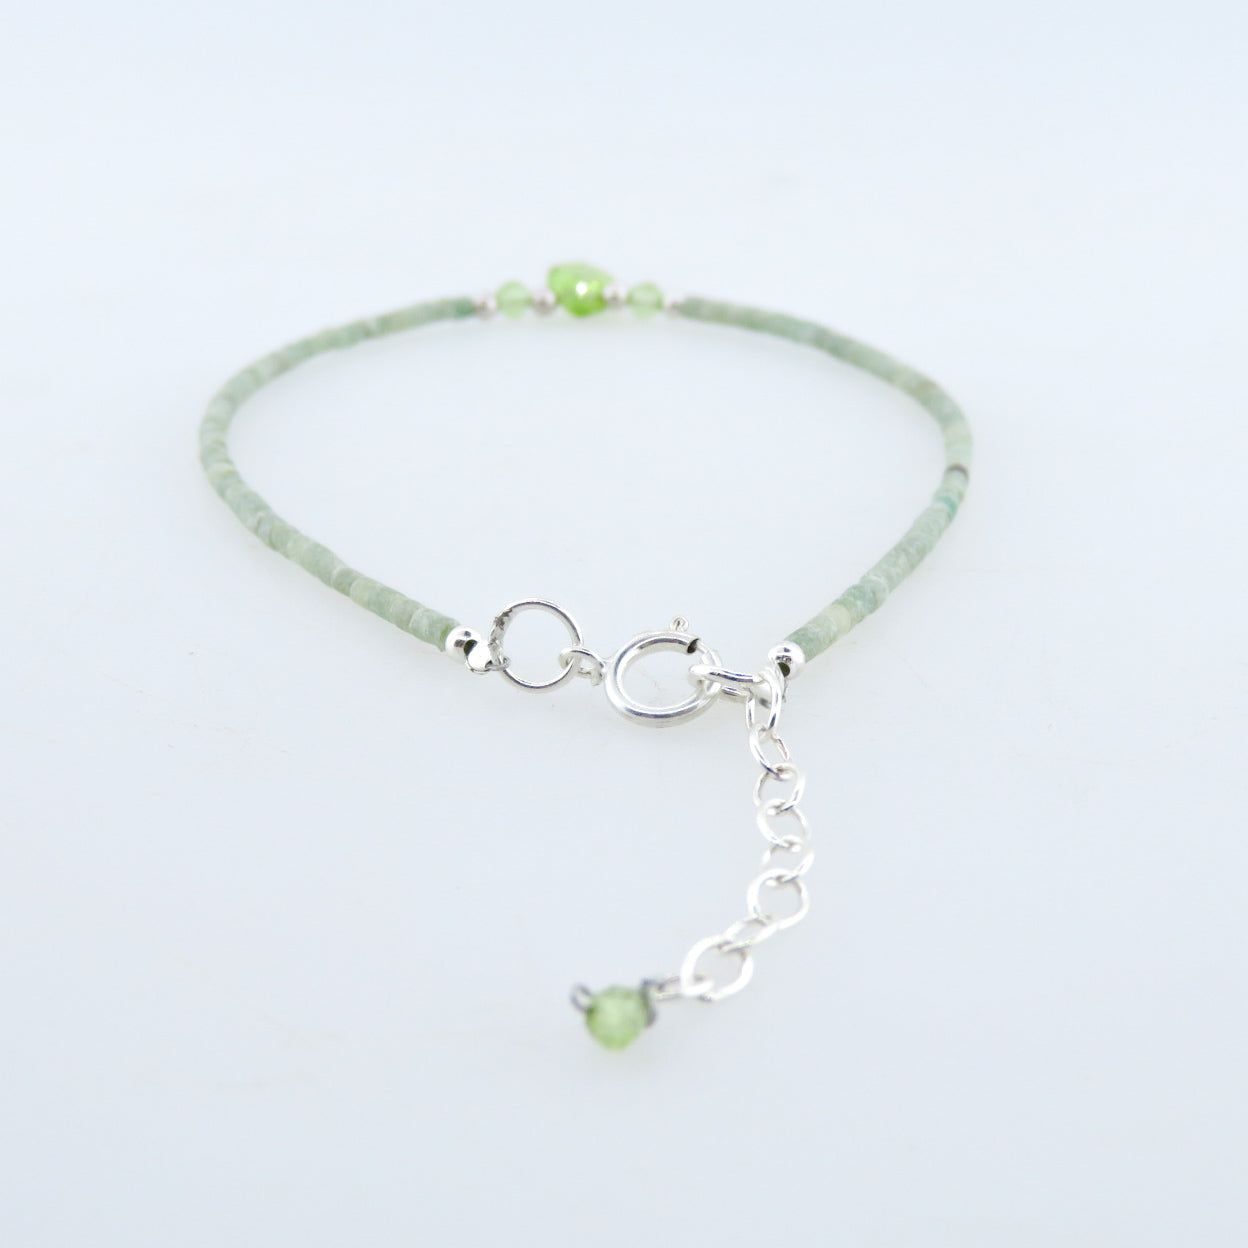 Jade Bracelet with Peridot and Silver Beads